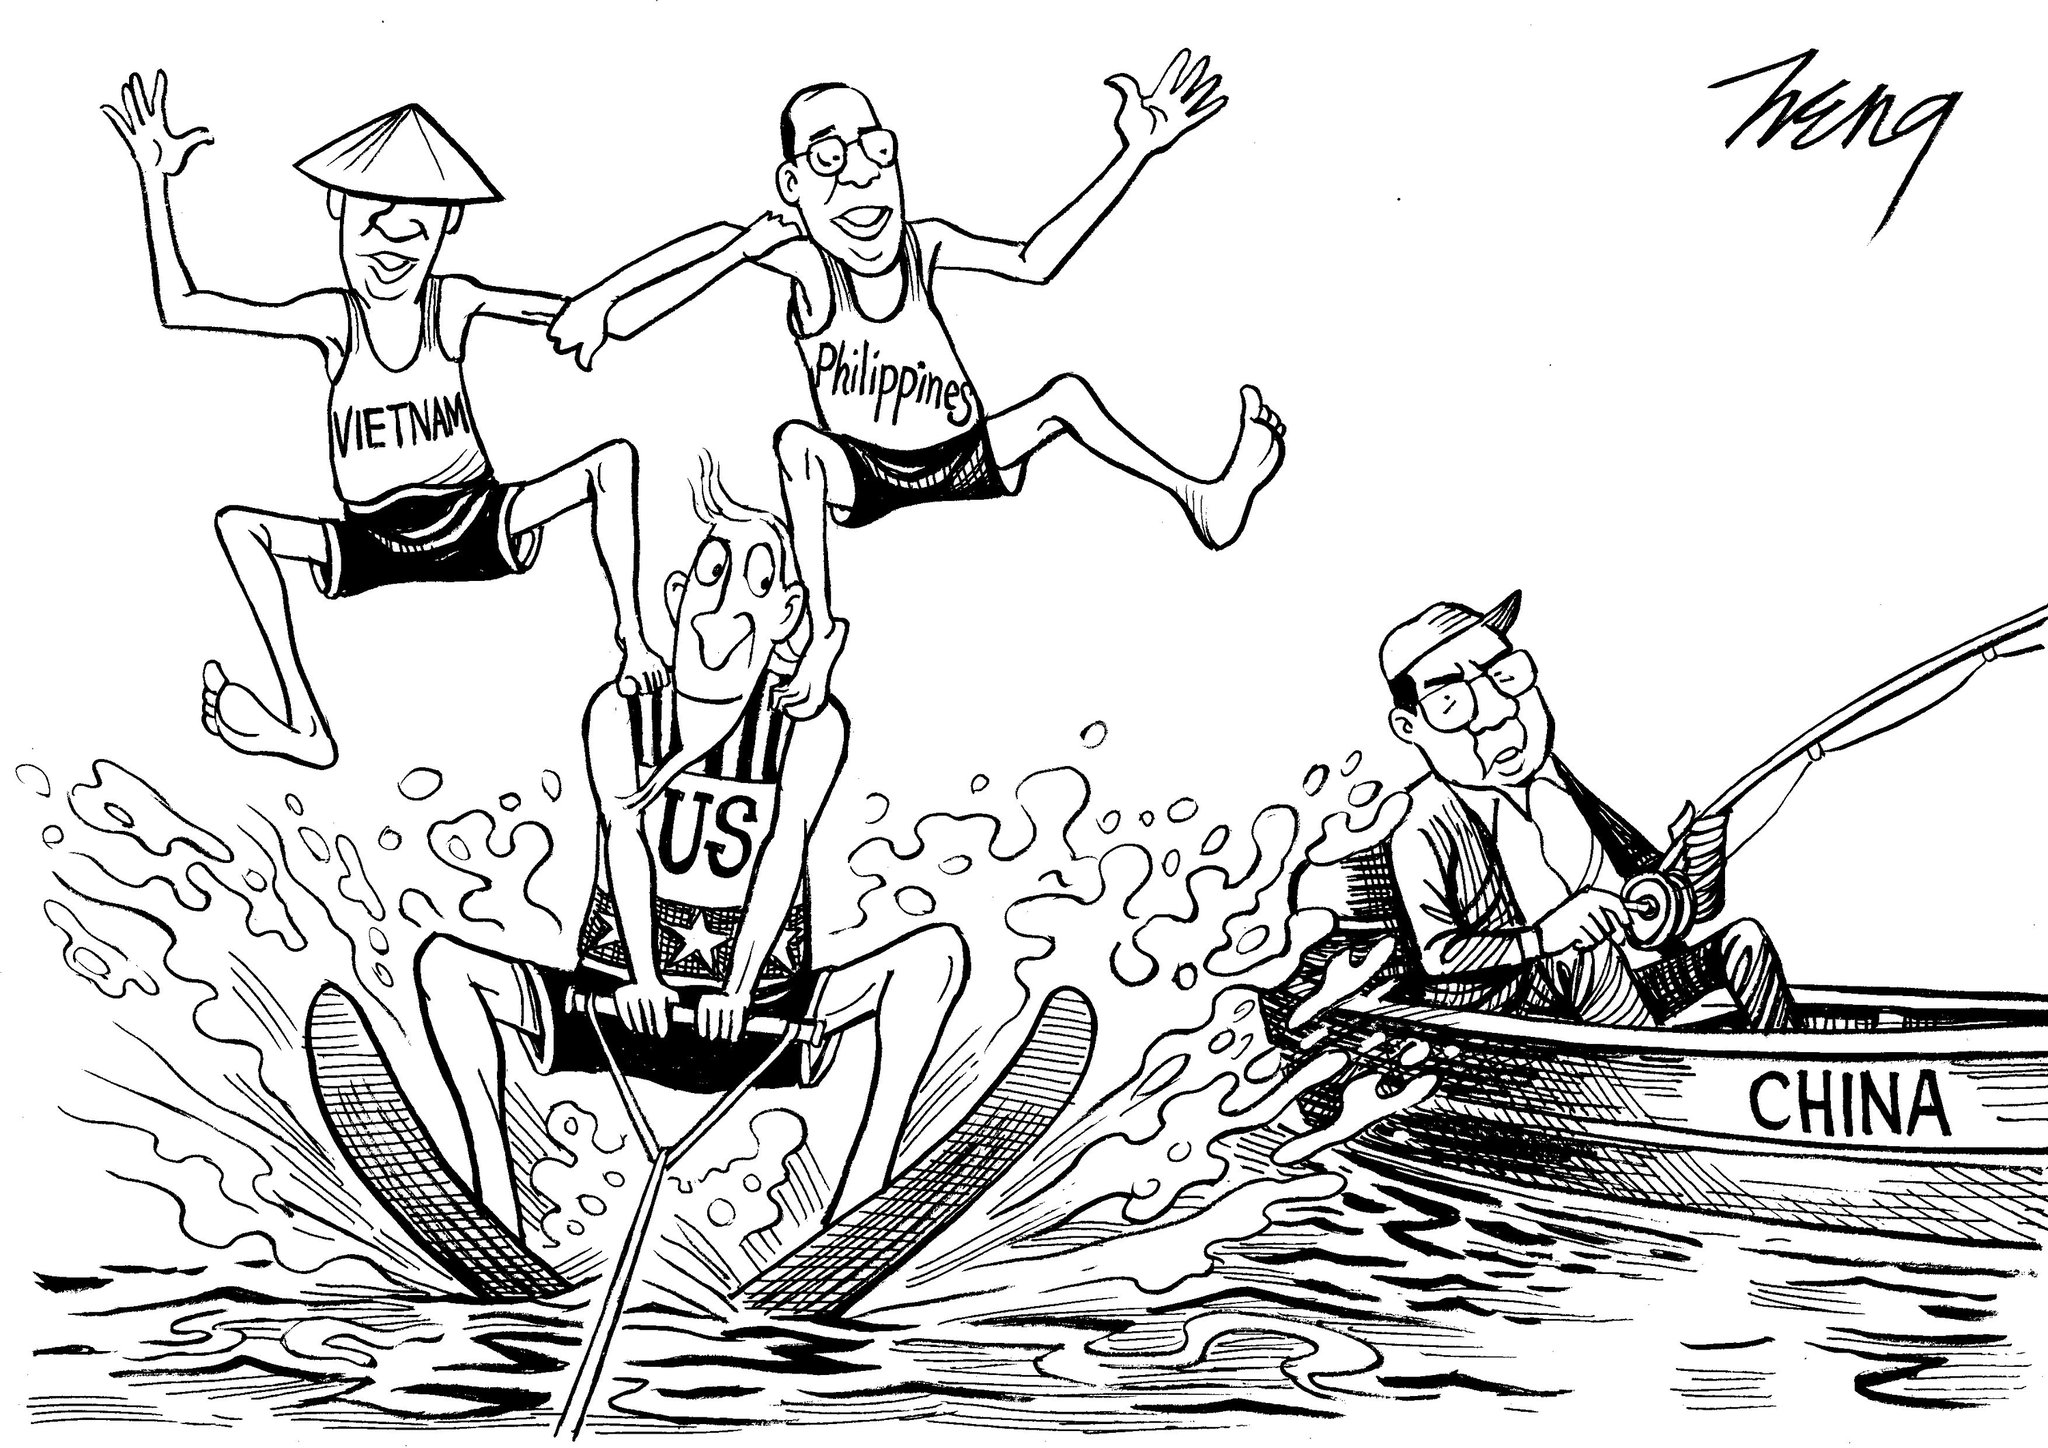 Editorial Cartoon Disputes Over The South China Sea The